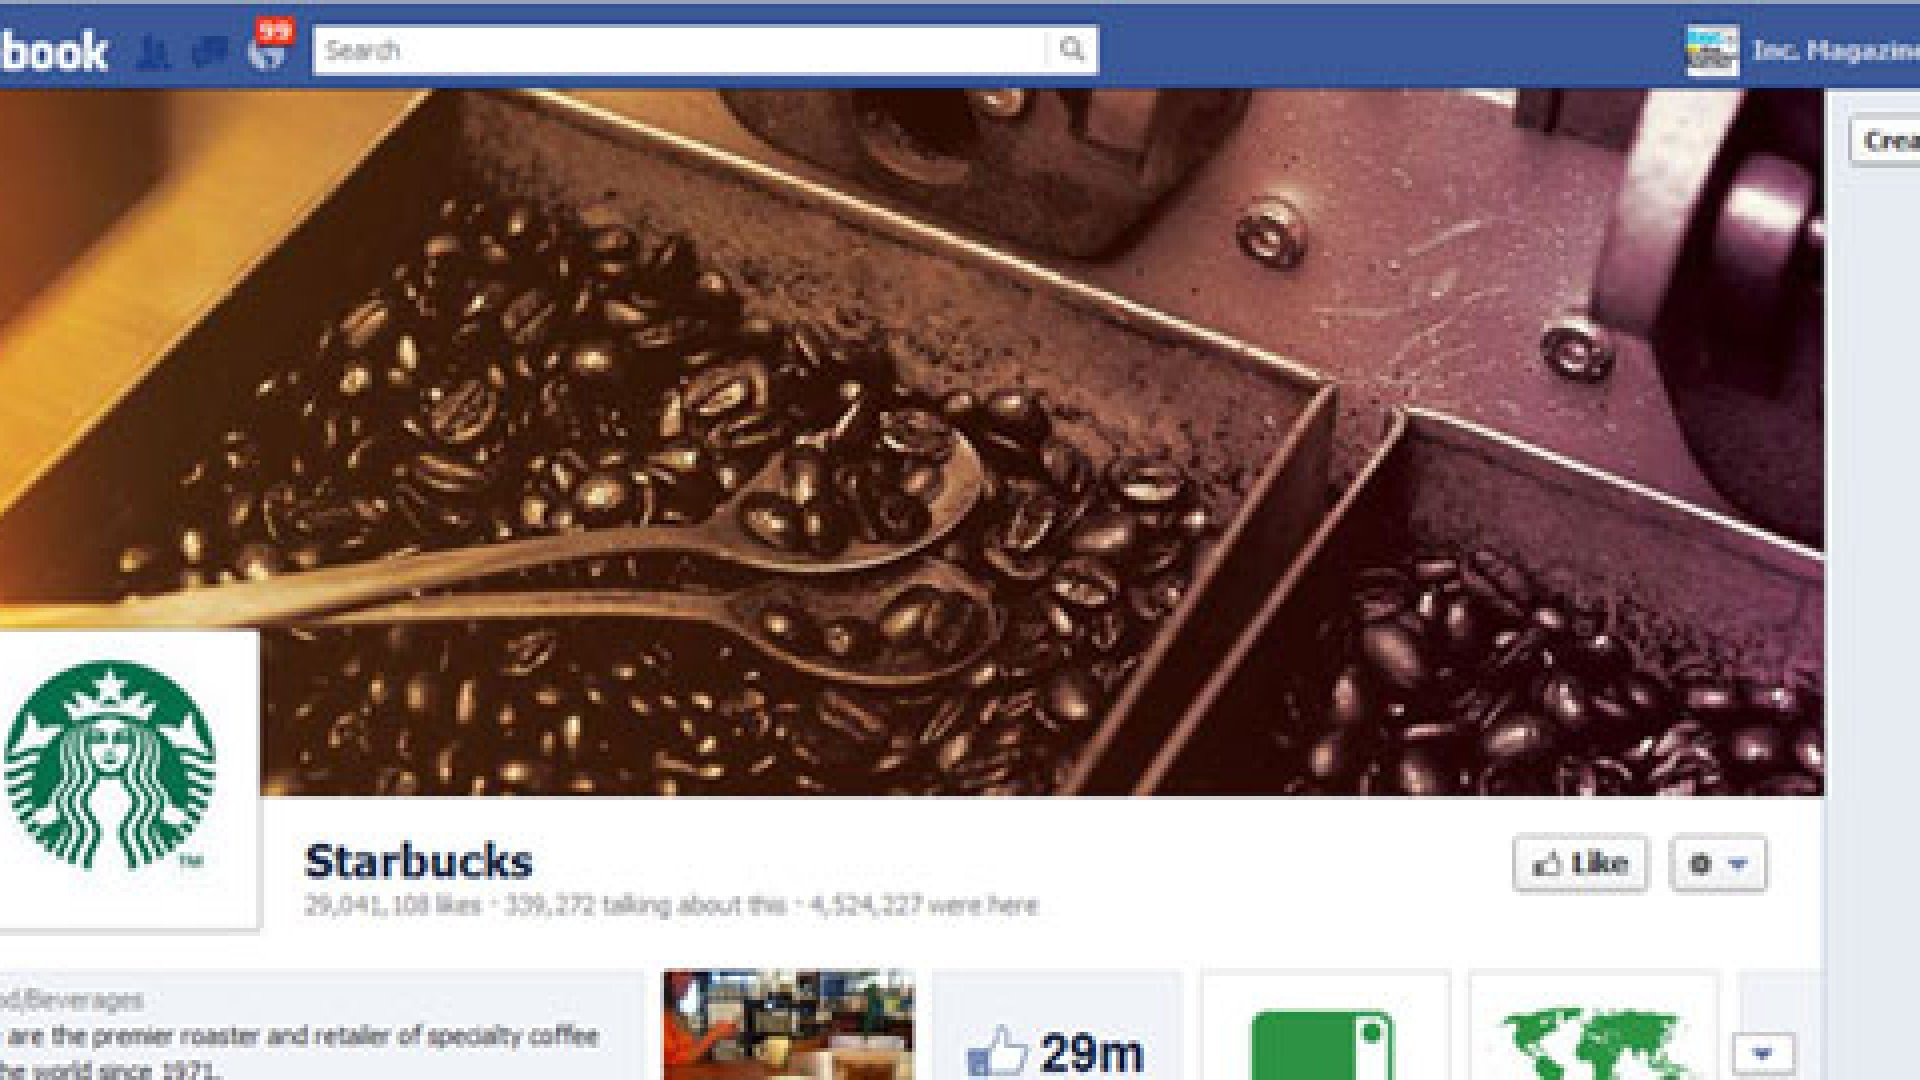 Starbucks has switched over to the new timeline-style Facebook page.